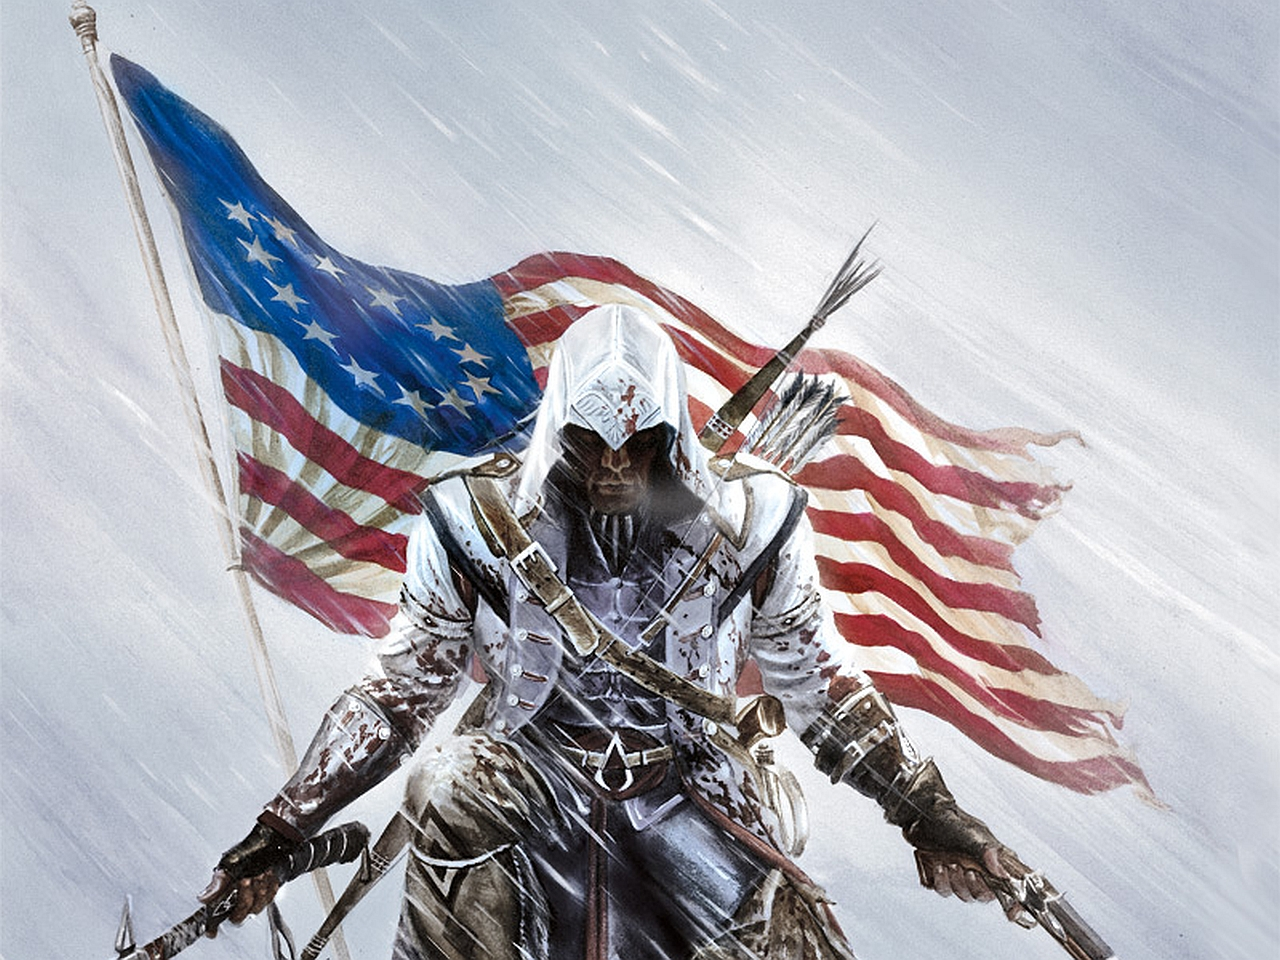 Assassins Creed III Wallpaper 1280x960